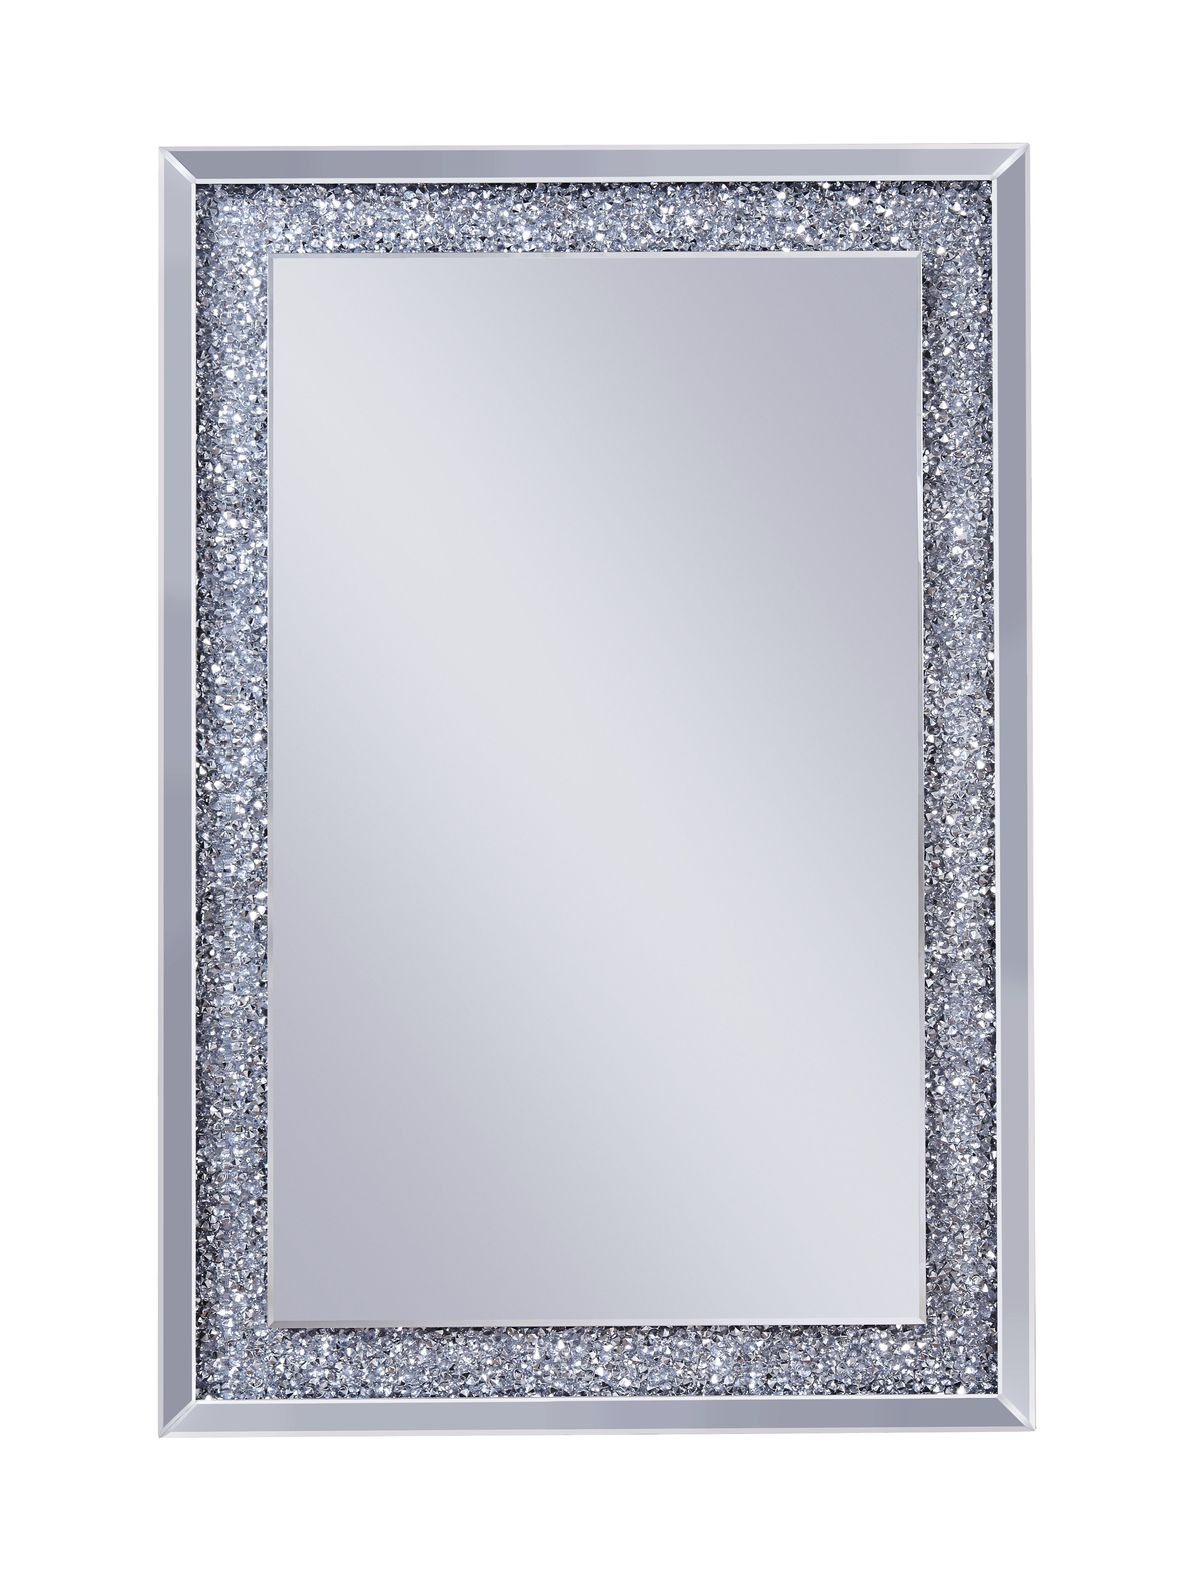 Mirror: Mirrored Wooden Frame Accent Wall Decor With Faux Crystal Inlay